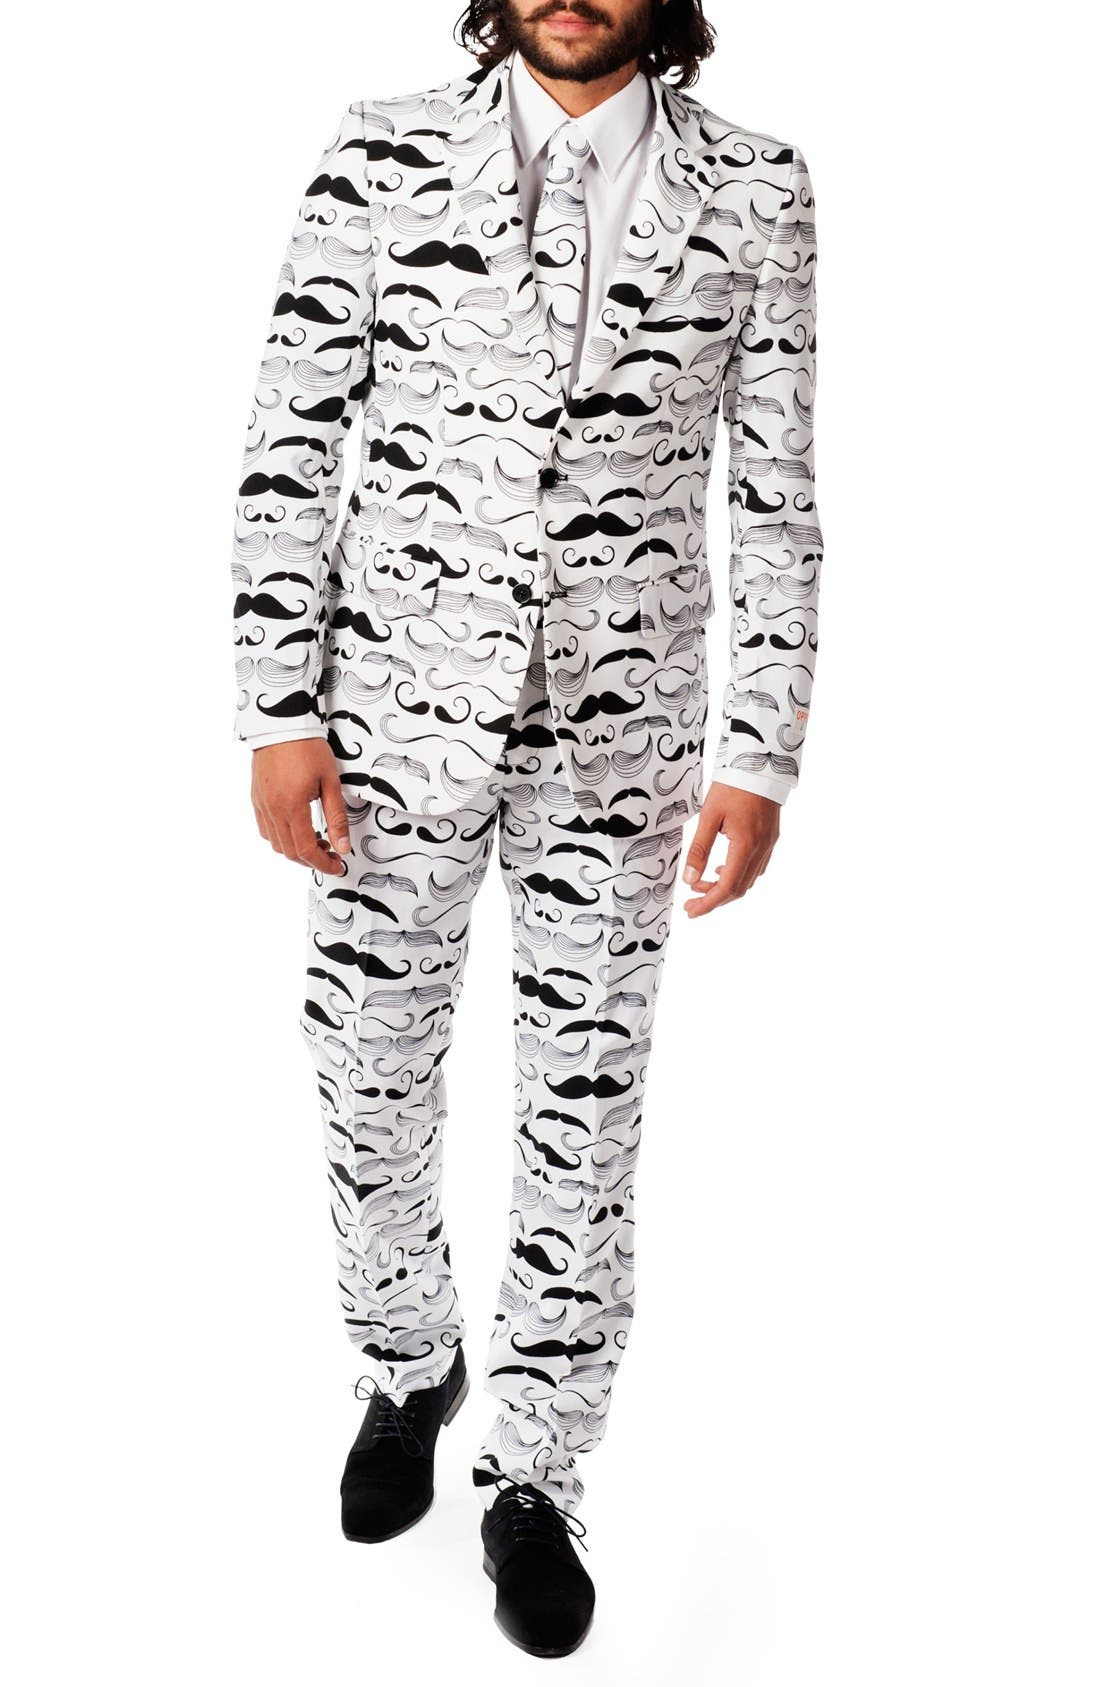 Alternate Image 1 Selected - OppoSuits 'Tashtastic' Trim Fit Two-Piece Suit with Tie